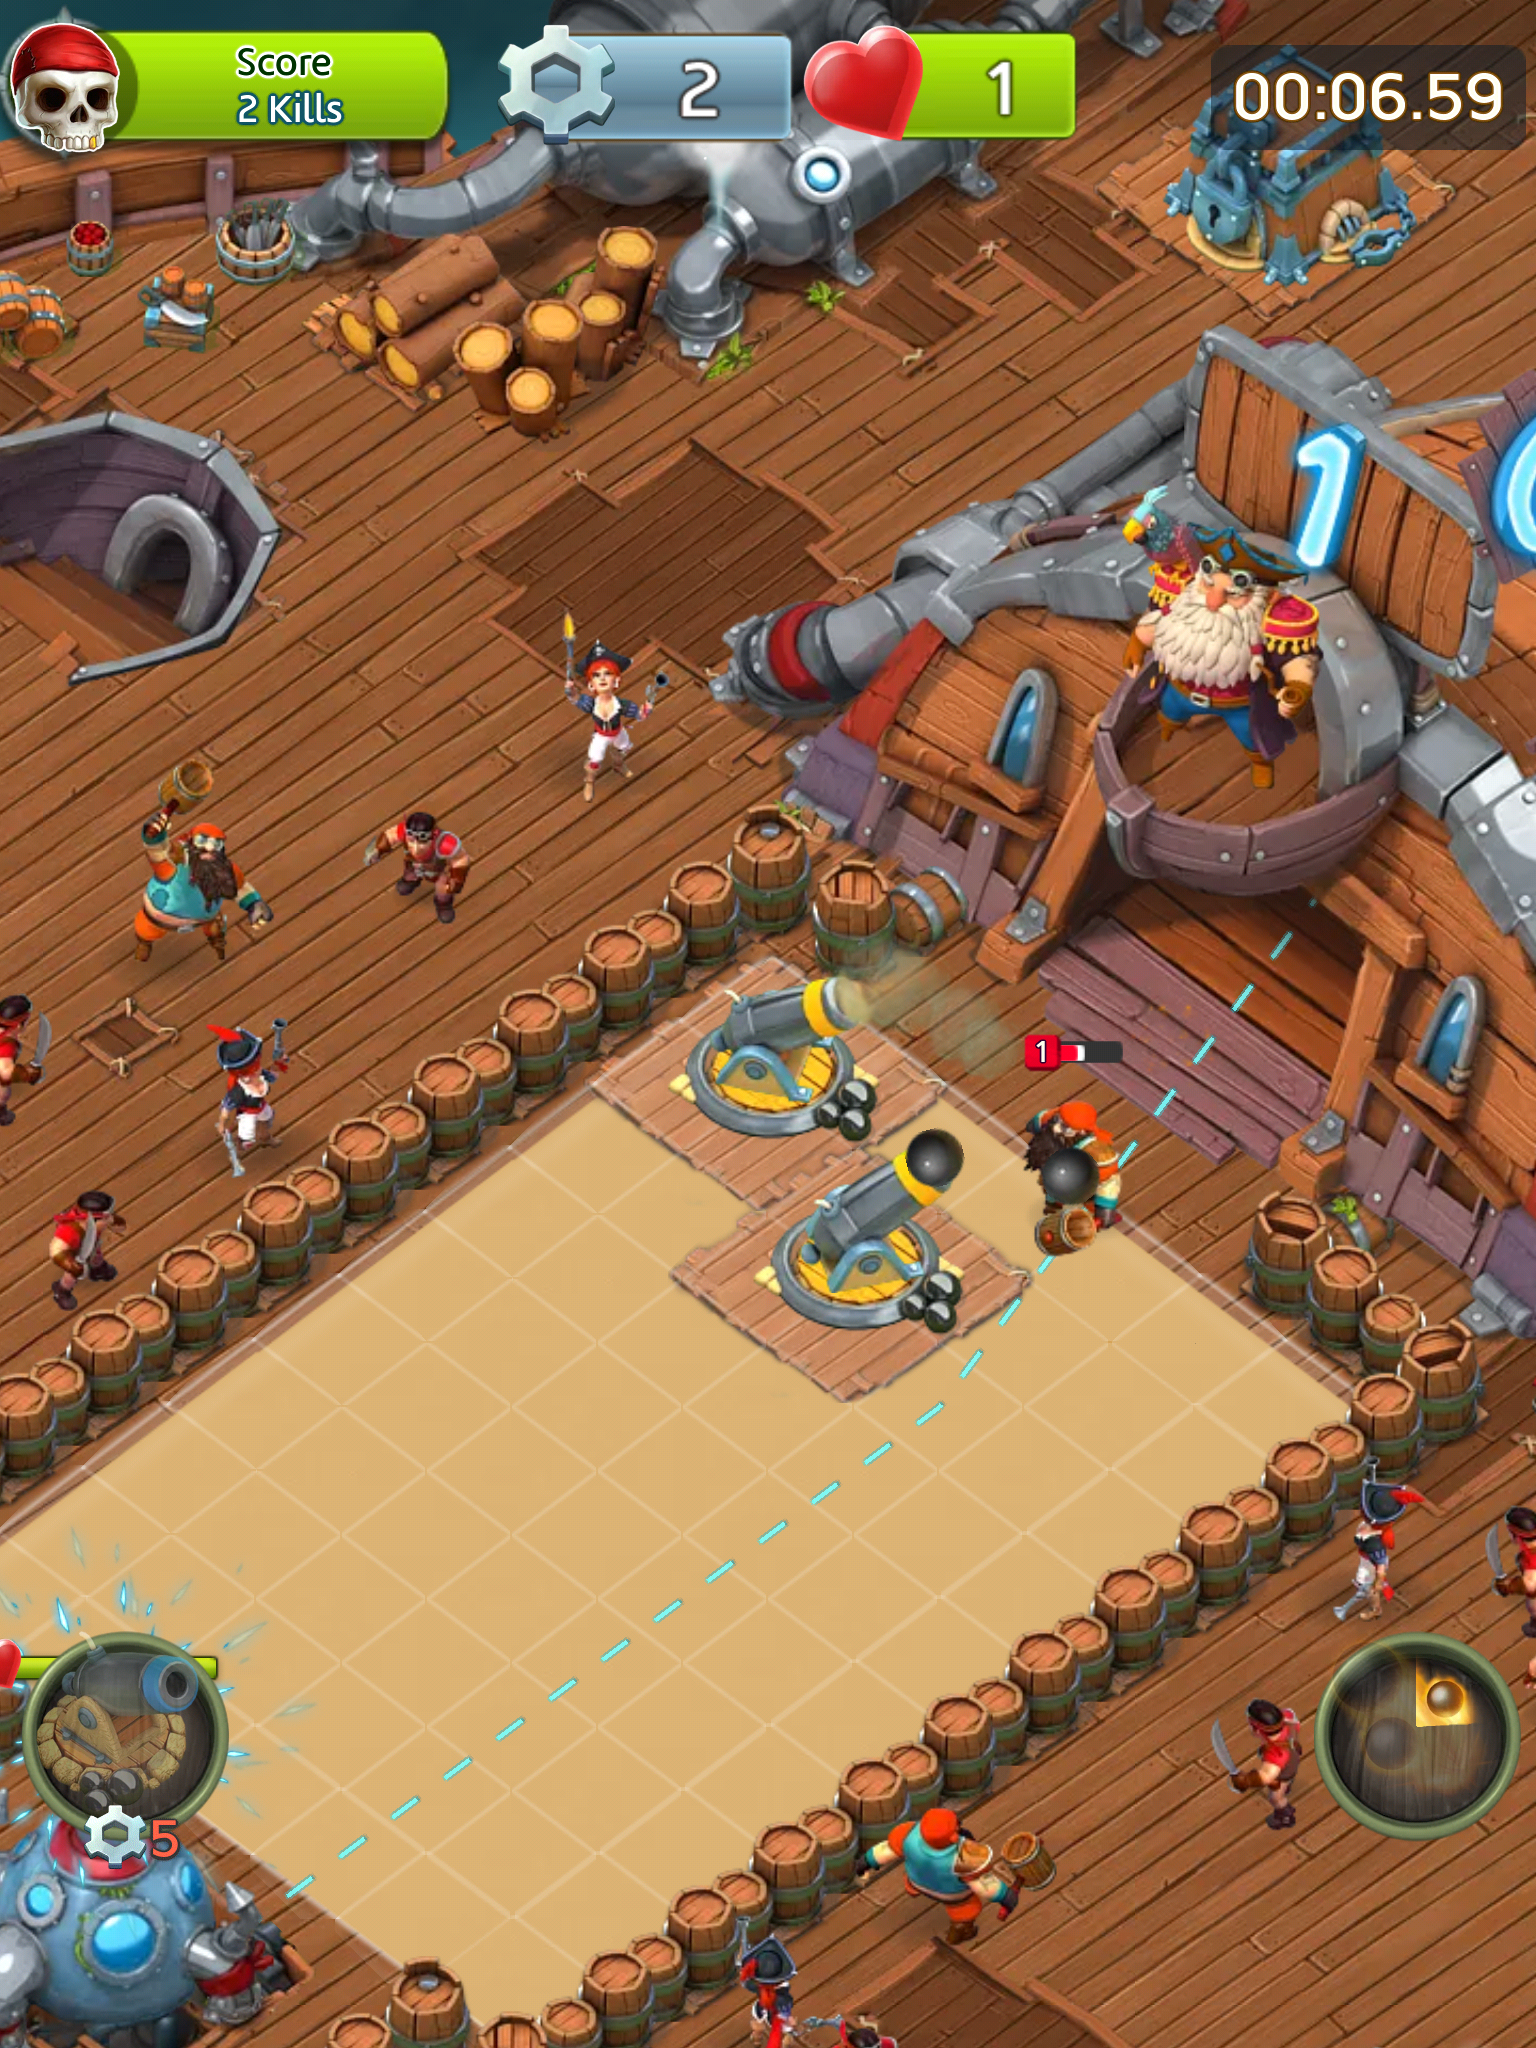 Survival Arena review - Can it bring tower defence to the new generation?